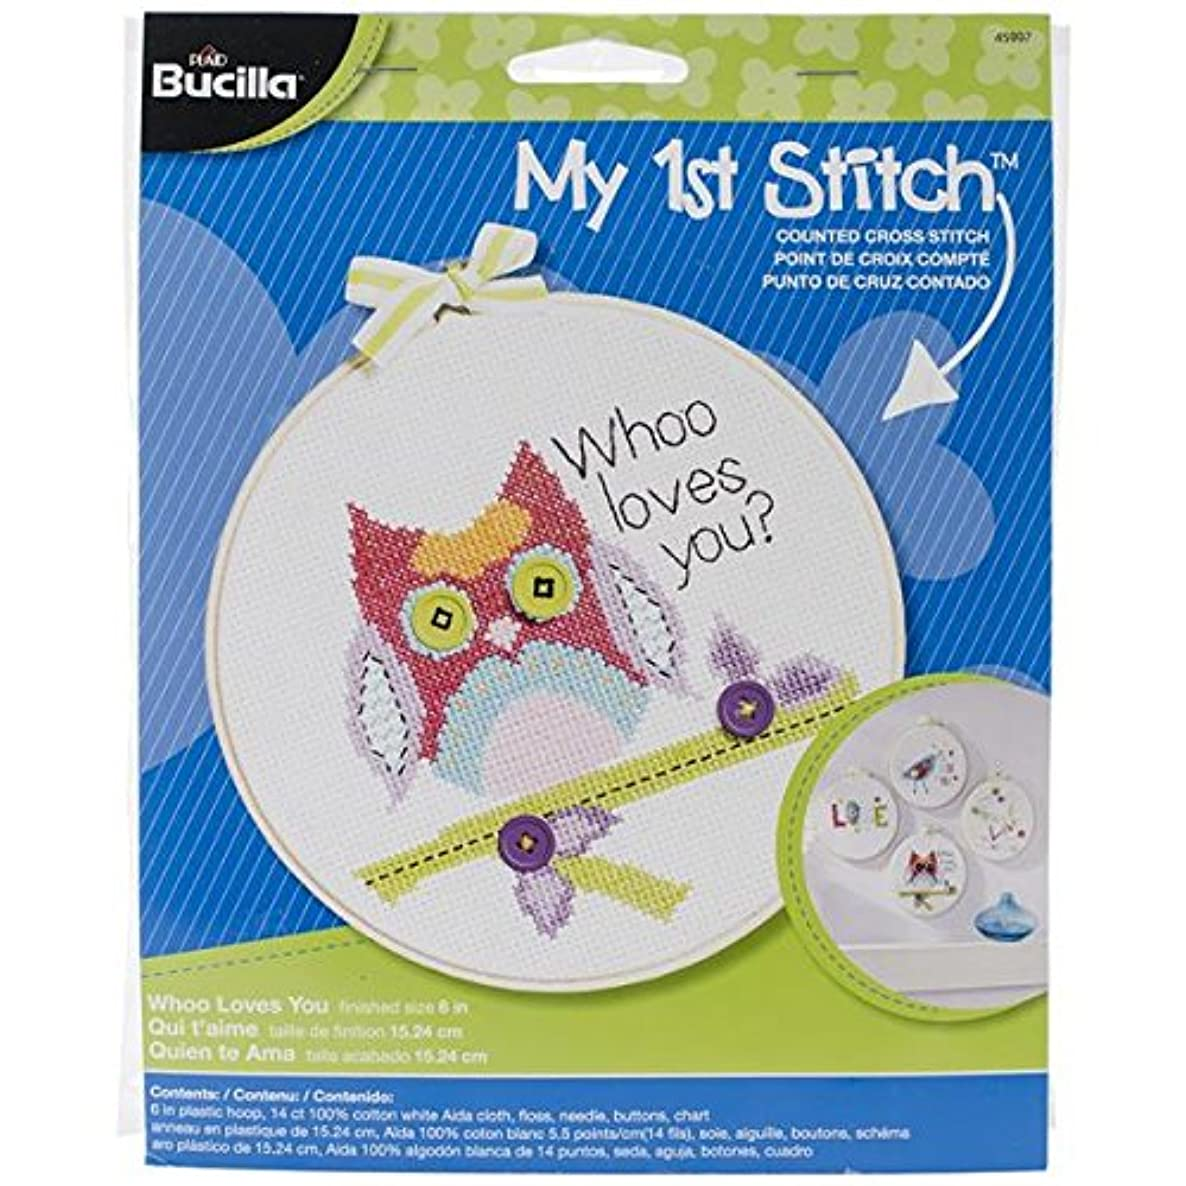 Bucilla My 1st Stitch Counted Cross Stitch Kit, 45997 Who Loves You